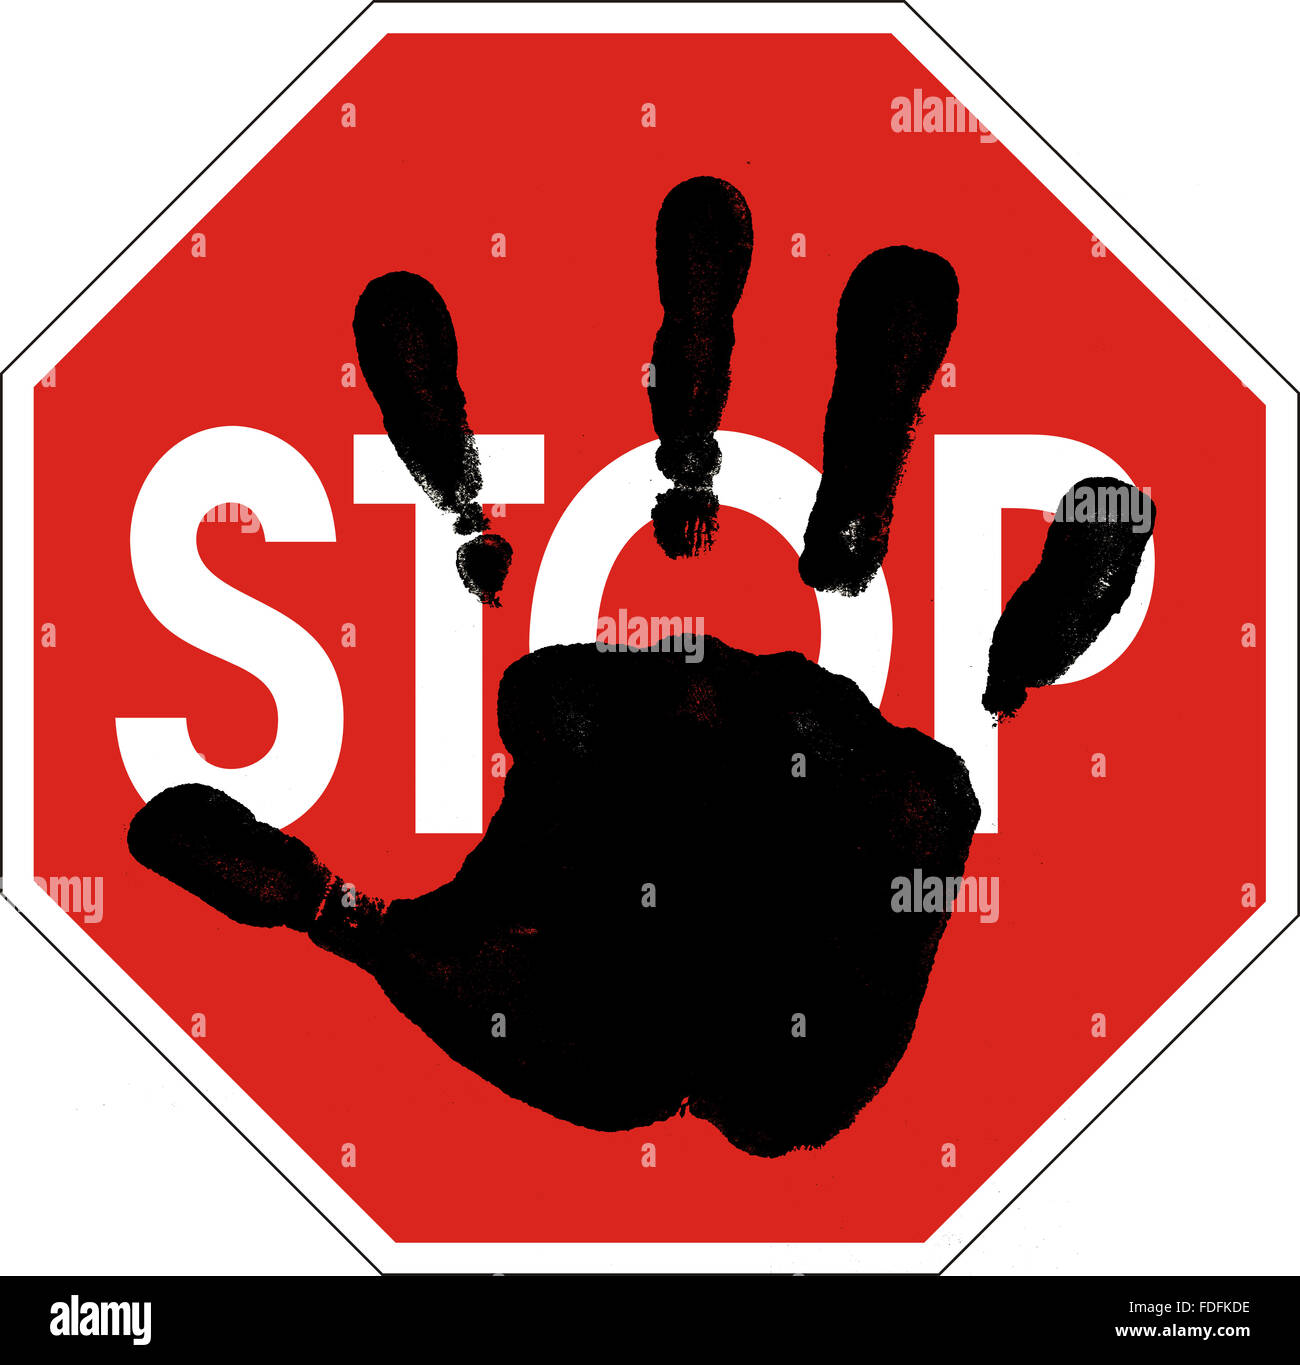 computer generated hand silhouette on Stop sign - Stock Image